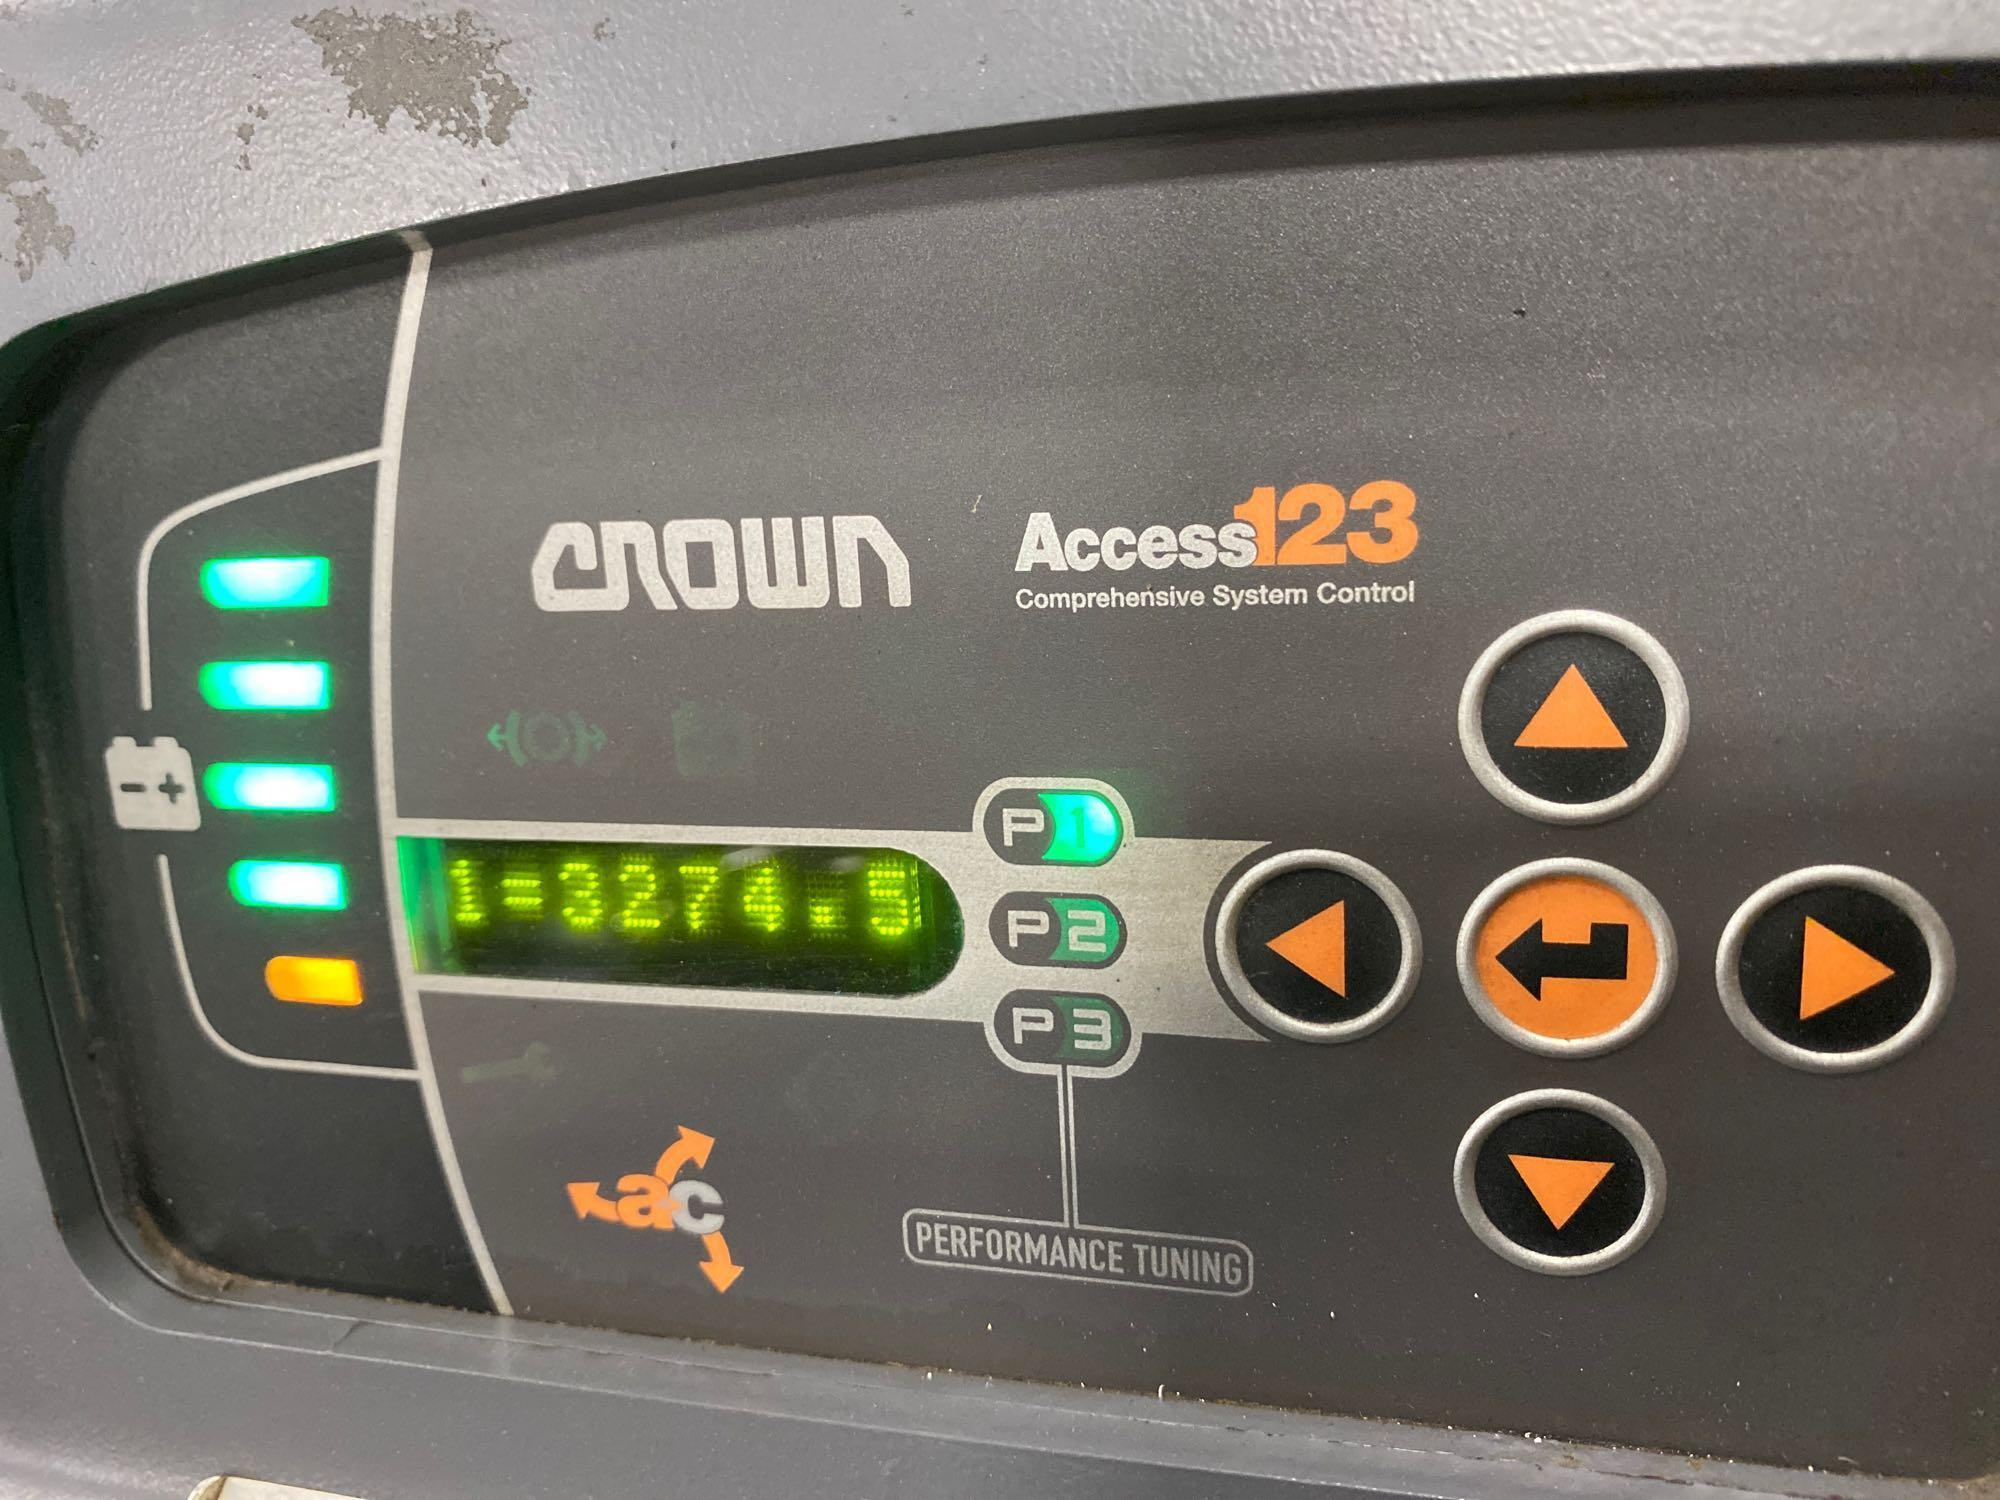 2012 CROWN ELECTRIC PALLET JACK, 8,000 LB CAPACITY, MODEL PC4500-80, 24V, RUNS AND OPERATES - Image 5 of 5